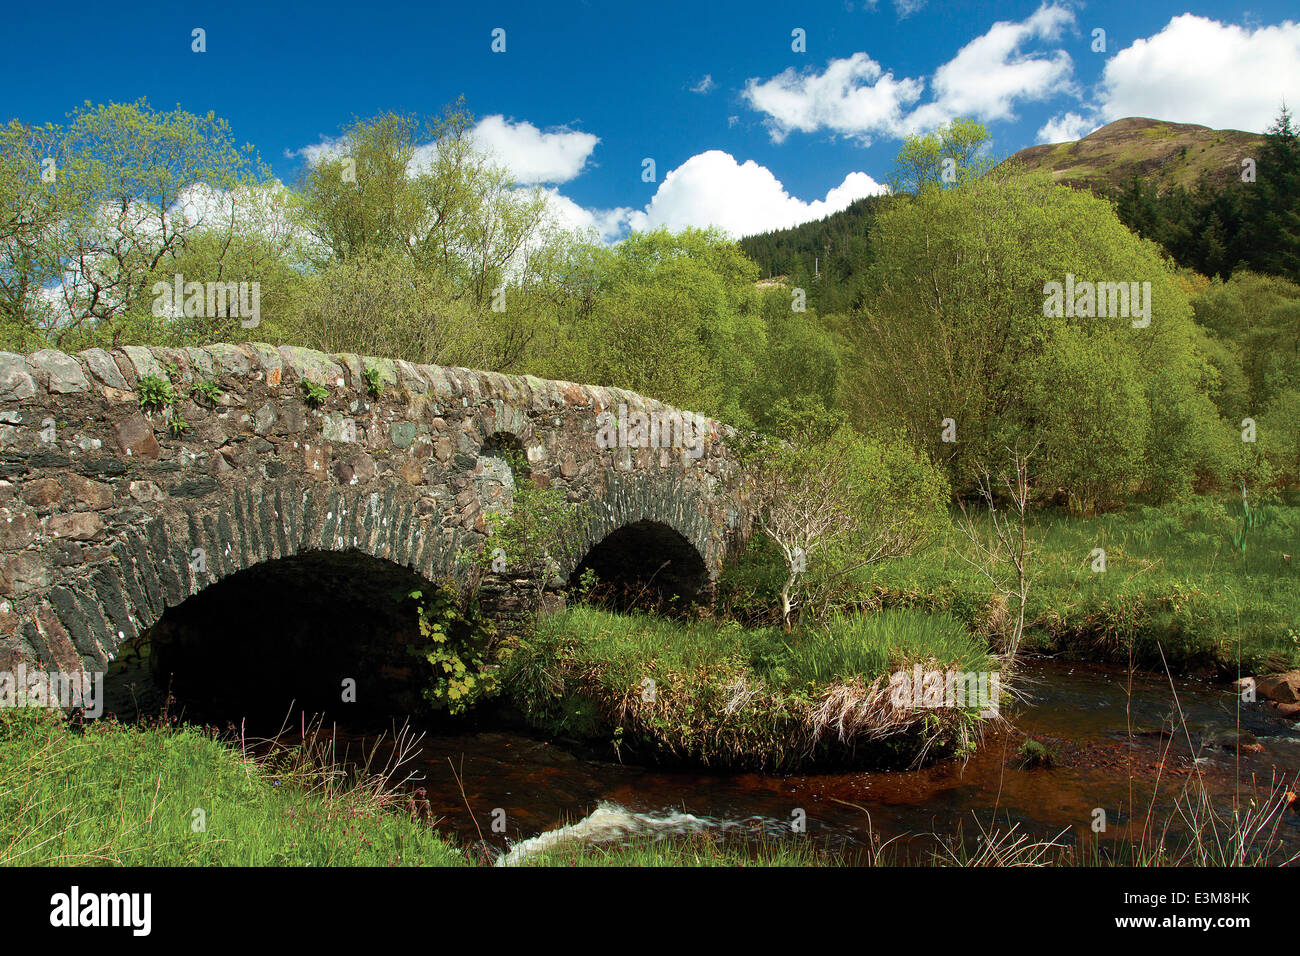 The historic 18th century double-arched bridge spanning the Leacann Water near Furnace, Argyll & Bute - Stock Image